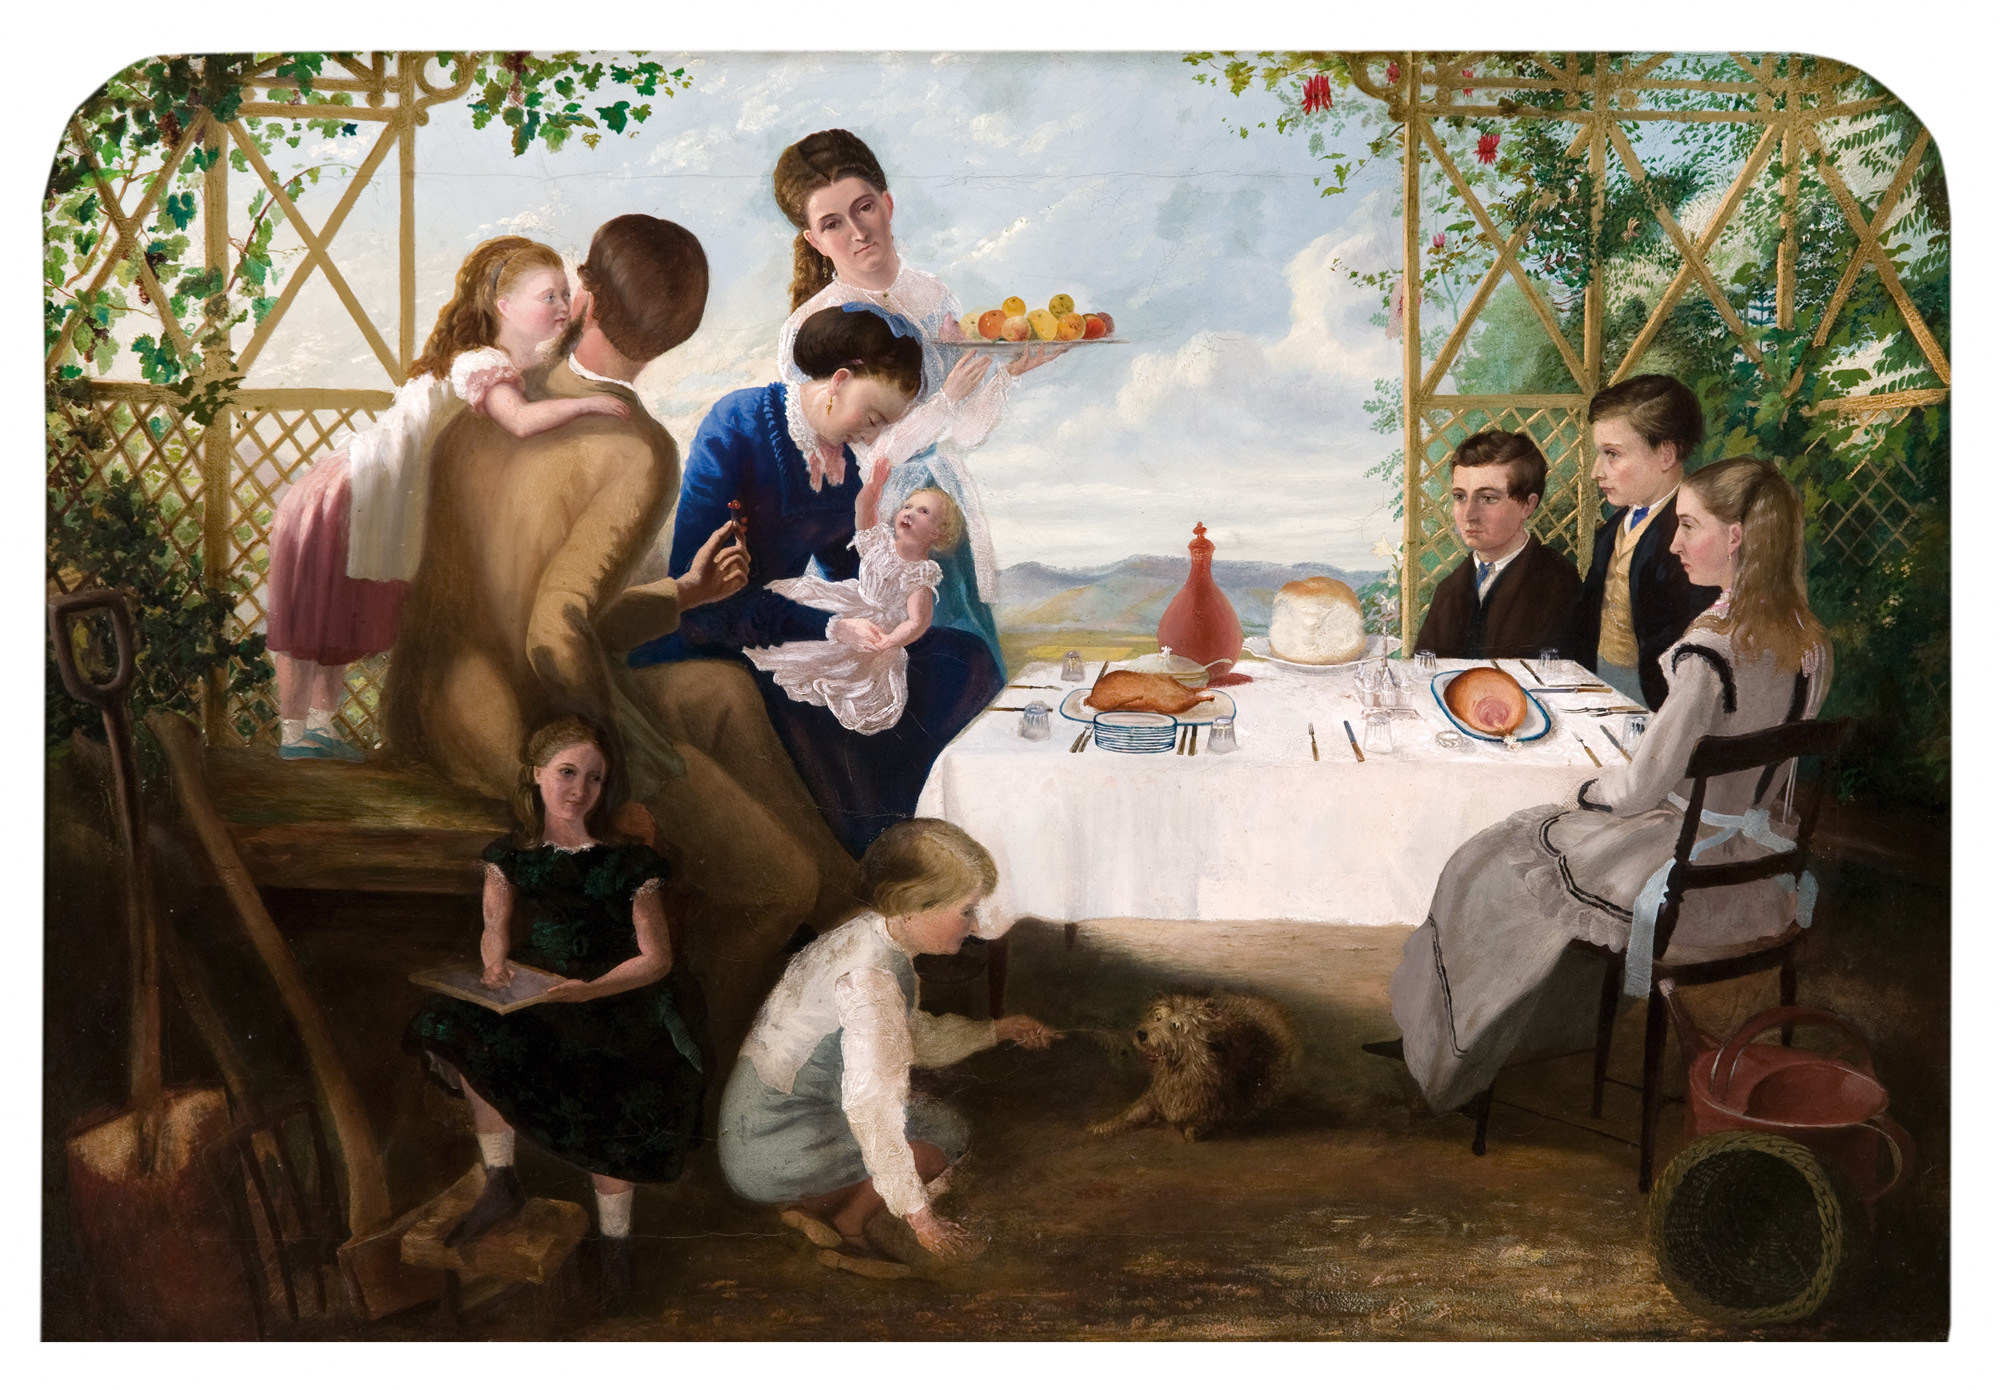 Charles Hill, Australia, 1824 - 1915,  The artist and his family , late 1860s, Adelaide, oil on canvas; Gift of Mrs I. Rusk 1966, Art Gallery of South Australia, Adelaide.